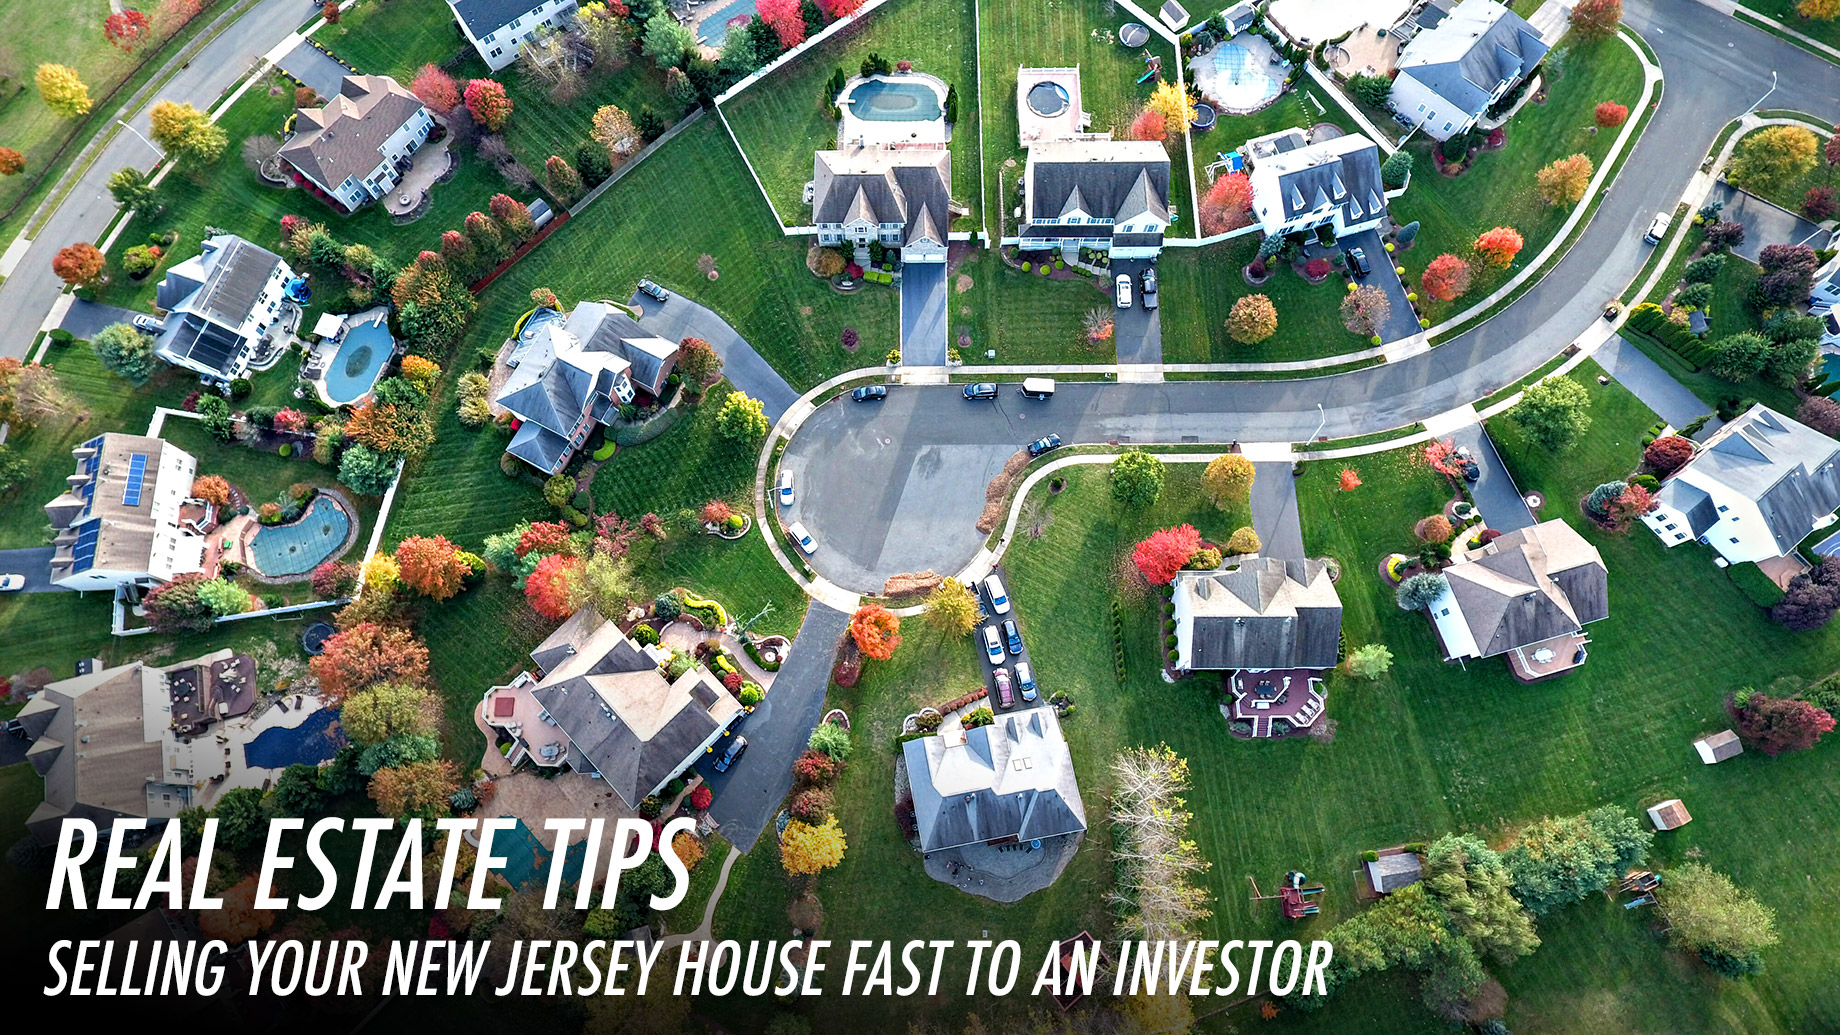 Real Estate Tips - Selling Your New Jersey House Fast To An Investor